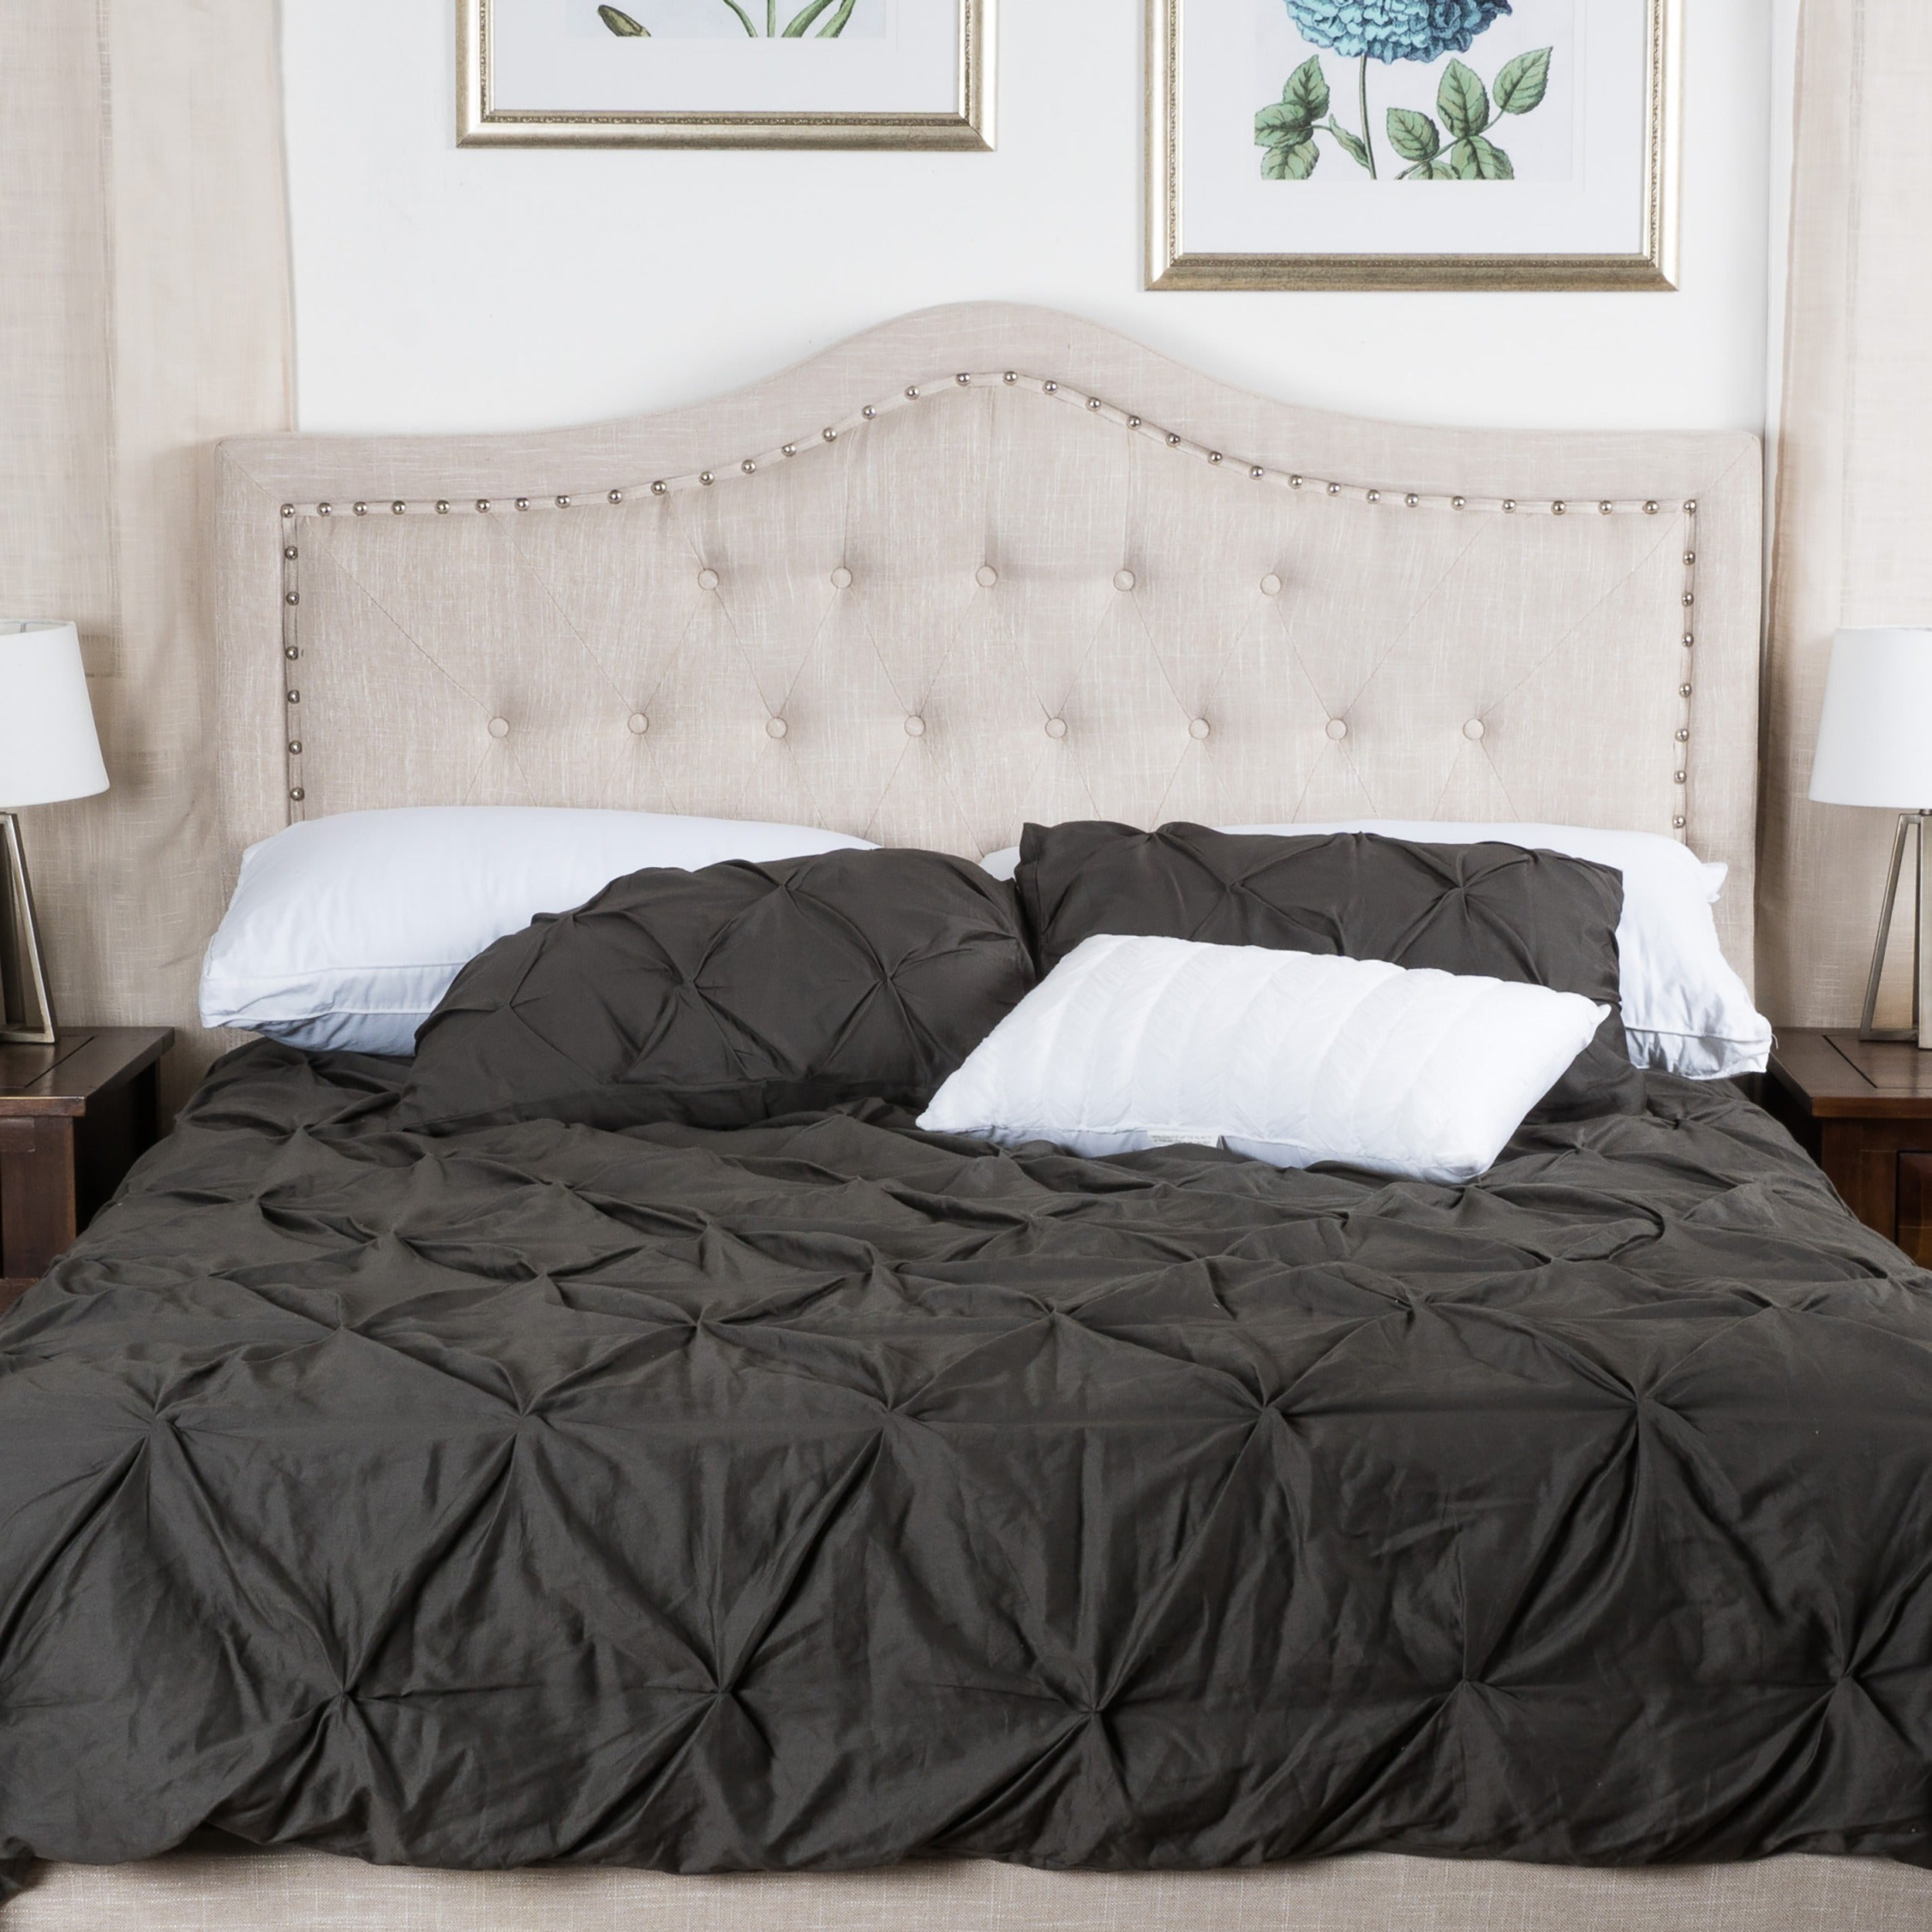 bedding king wayfair cozy size cover bedspreads contemporary beds by for comforter bed california ideas twin bedroom quilt